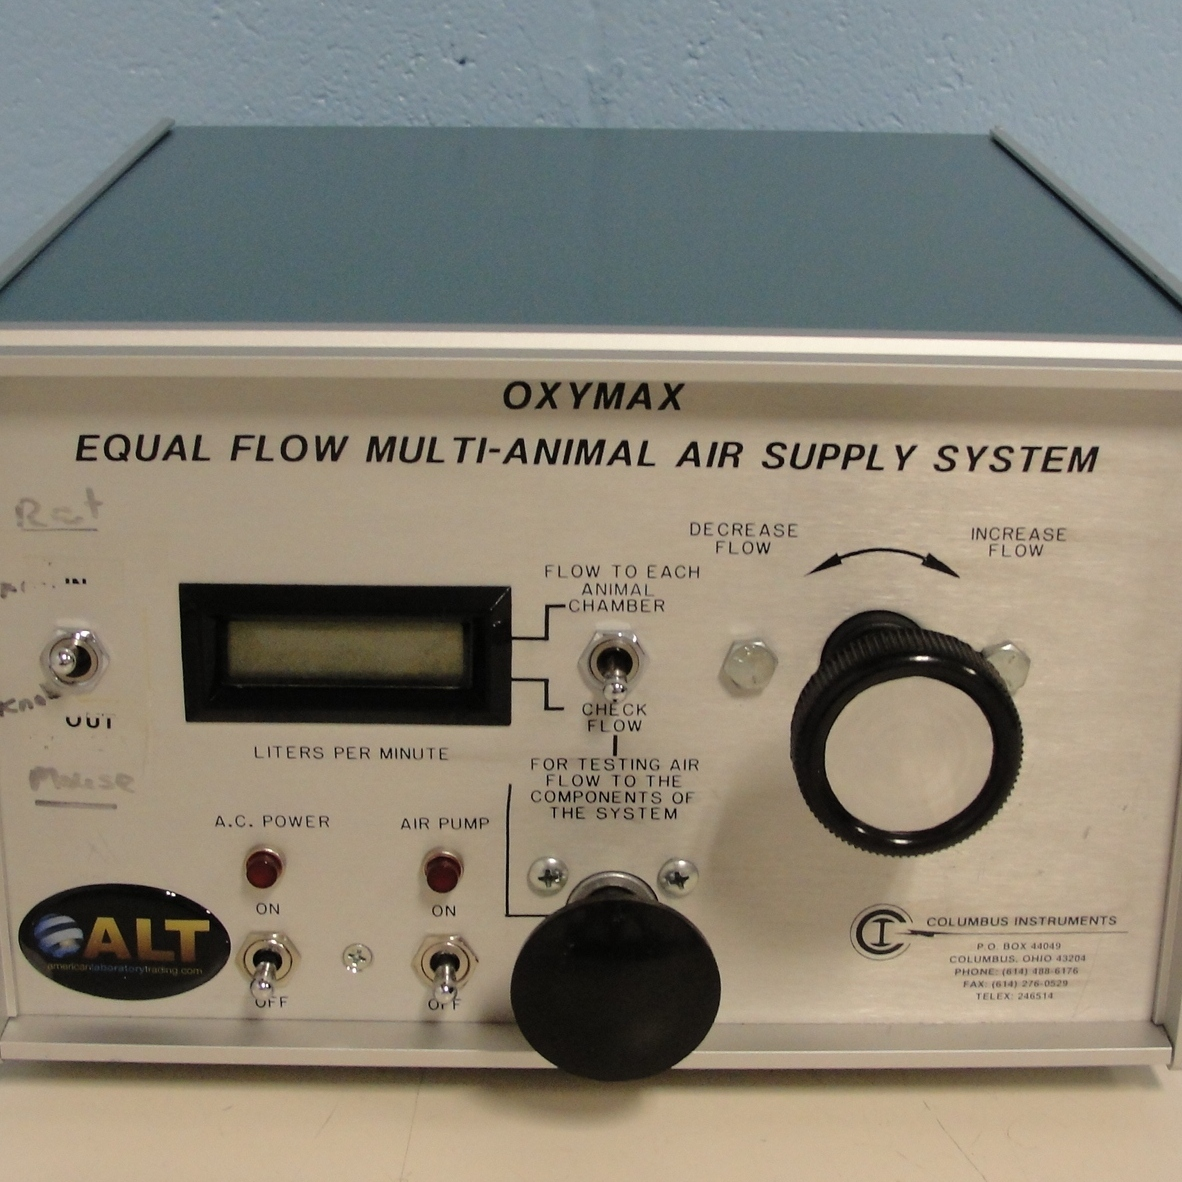 OXYMAX Equal Flow Multi-Animal Air Supply System Name